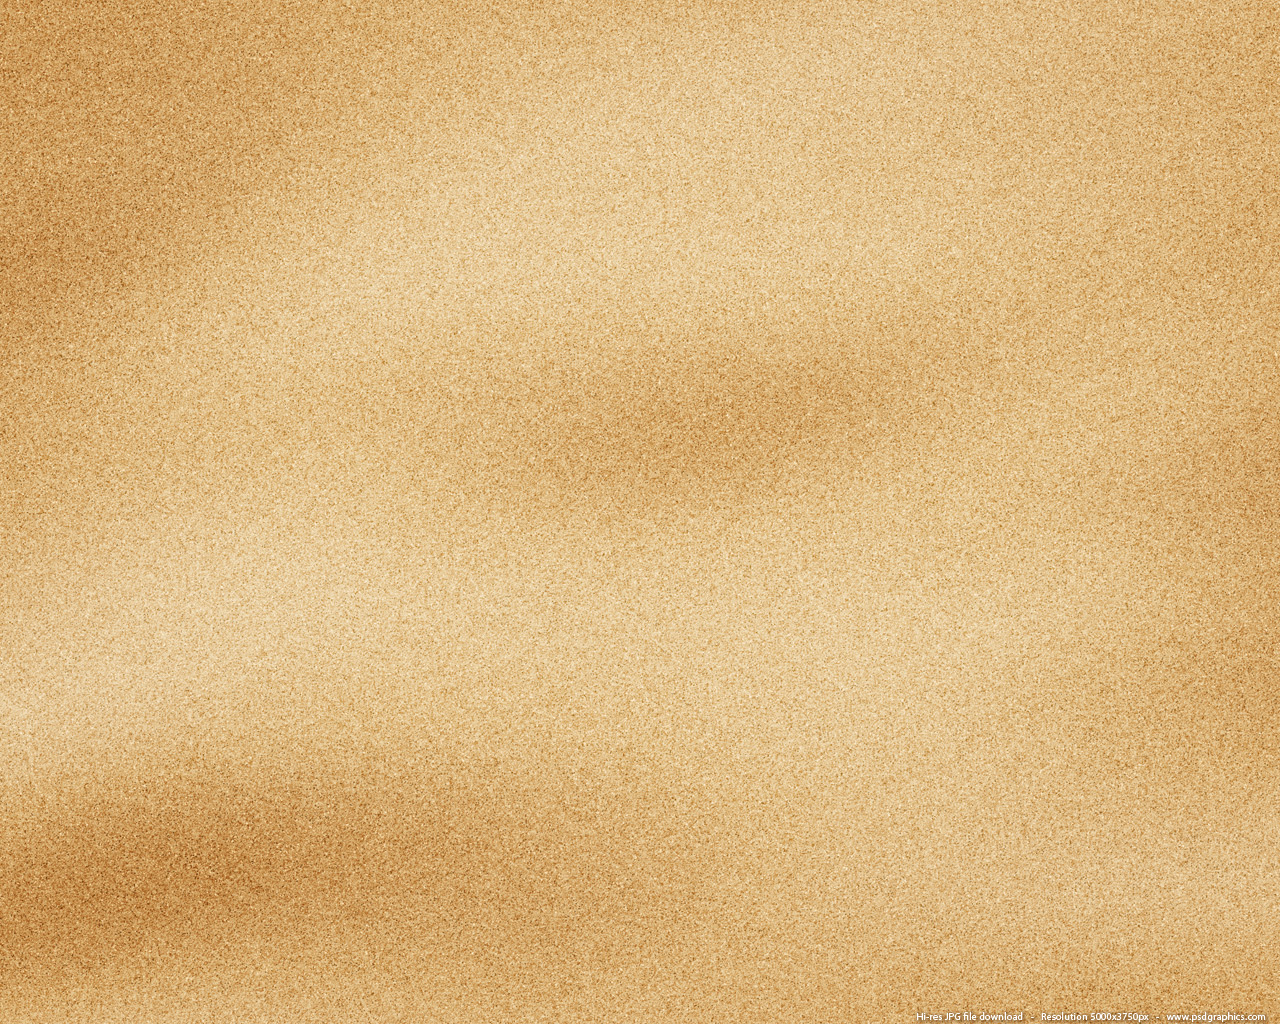 20 Sandpaper Background Textures on Behance